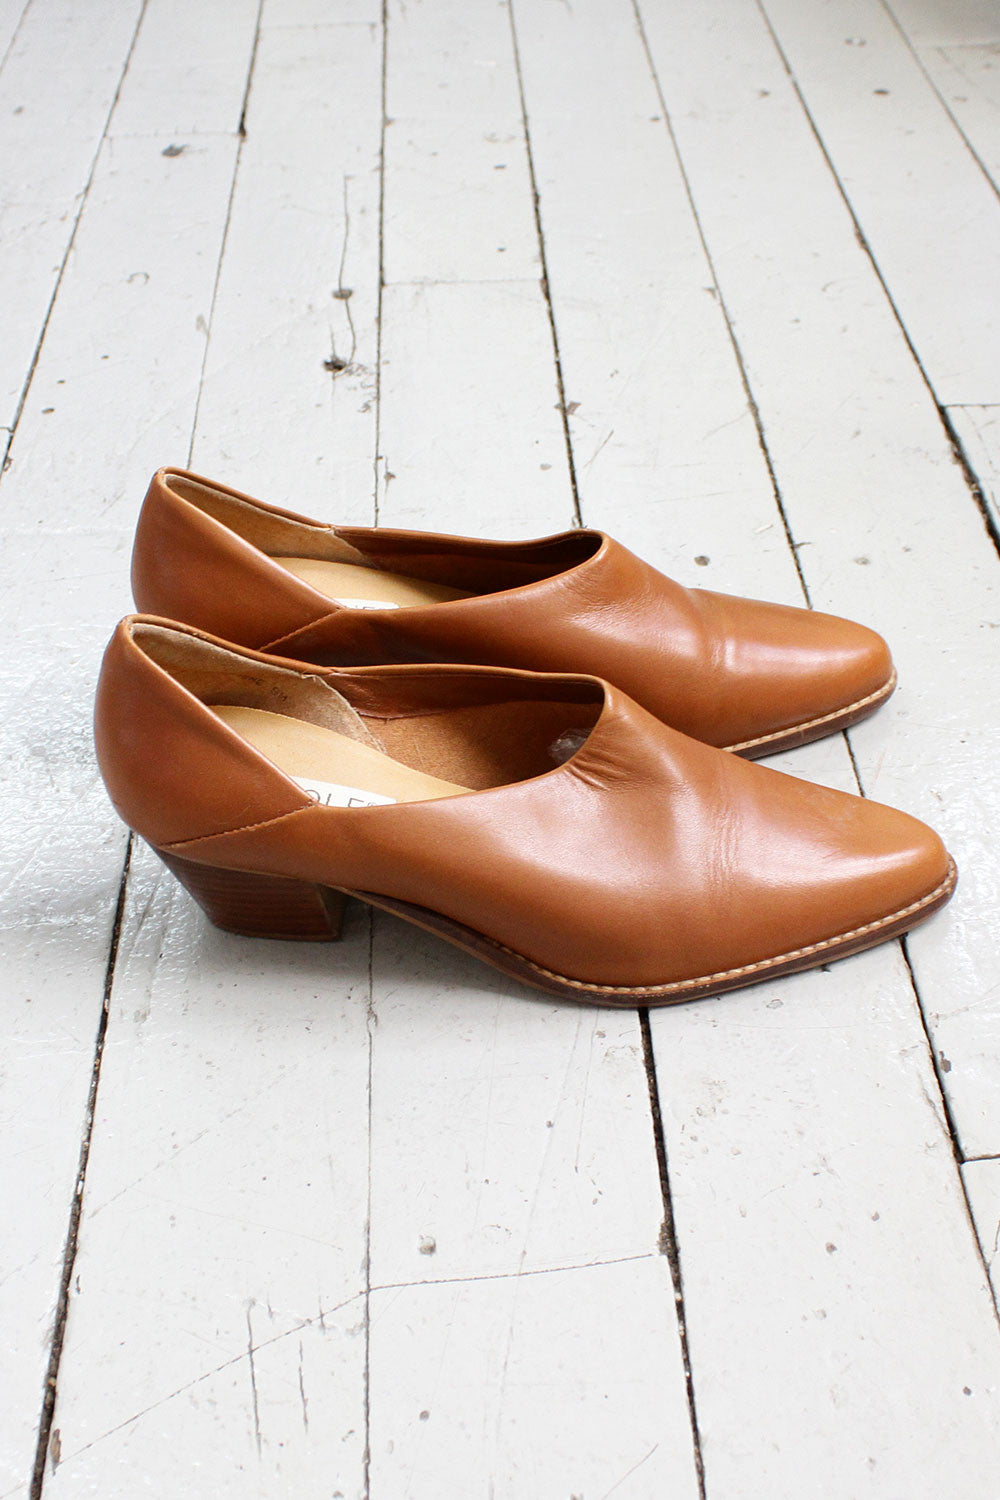 Cutout Maple Booties 9